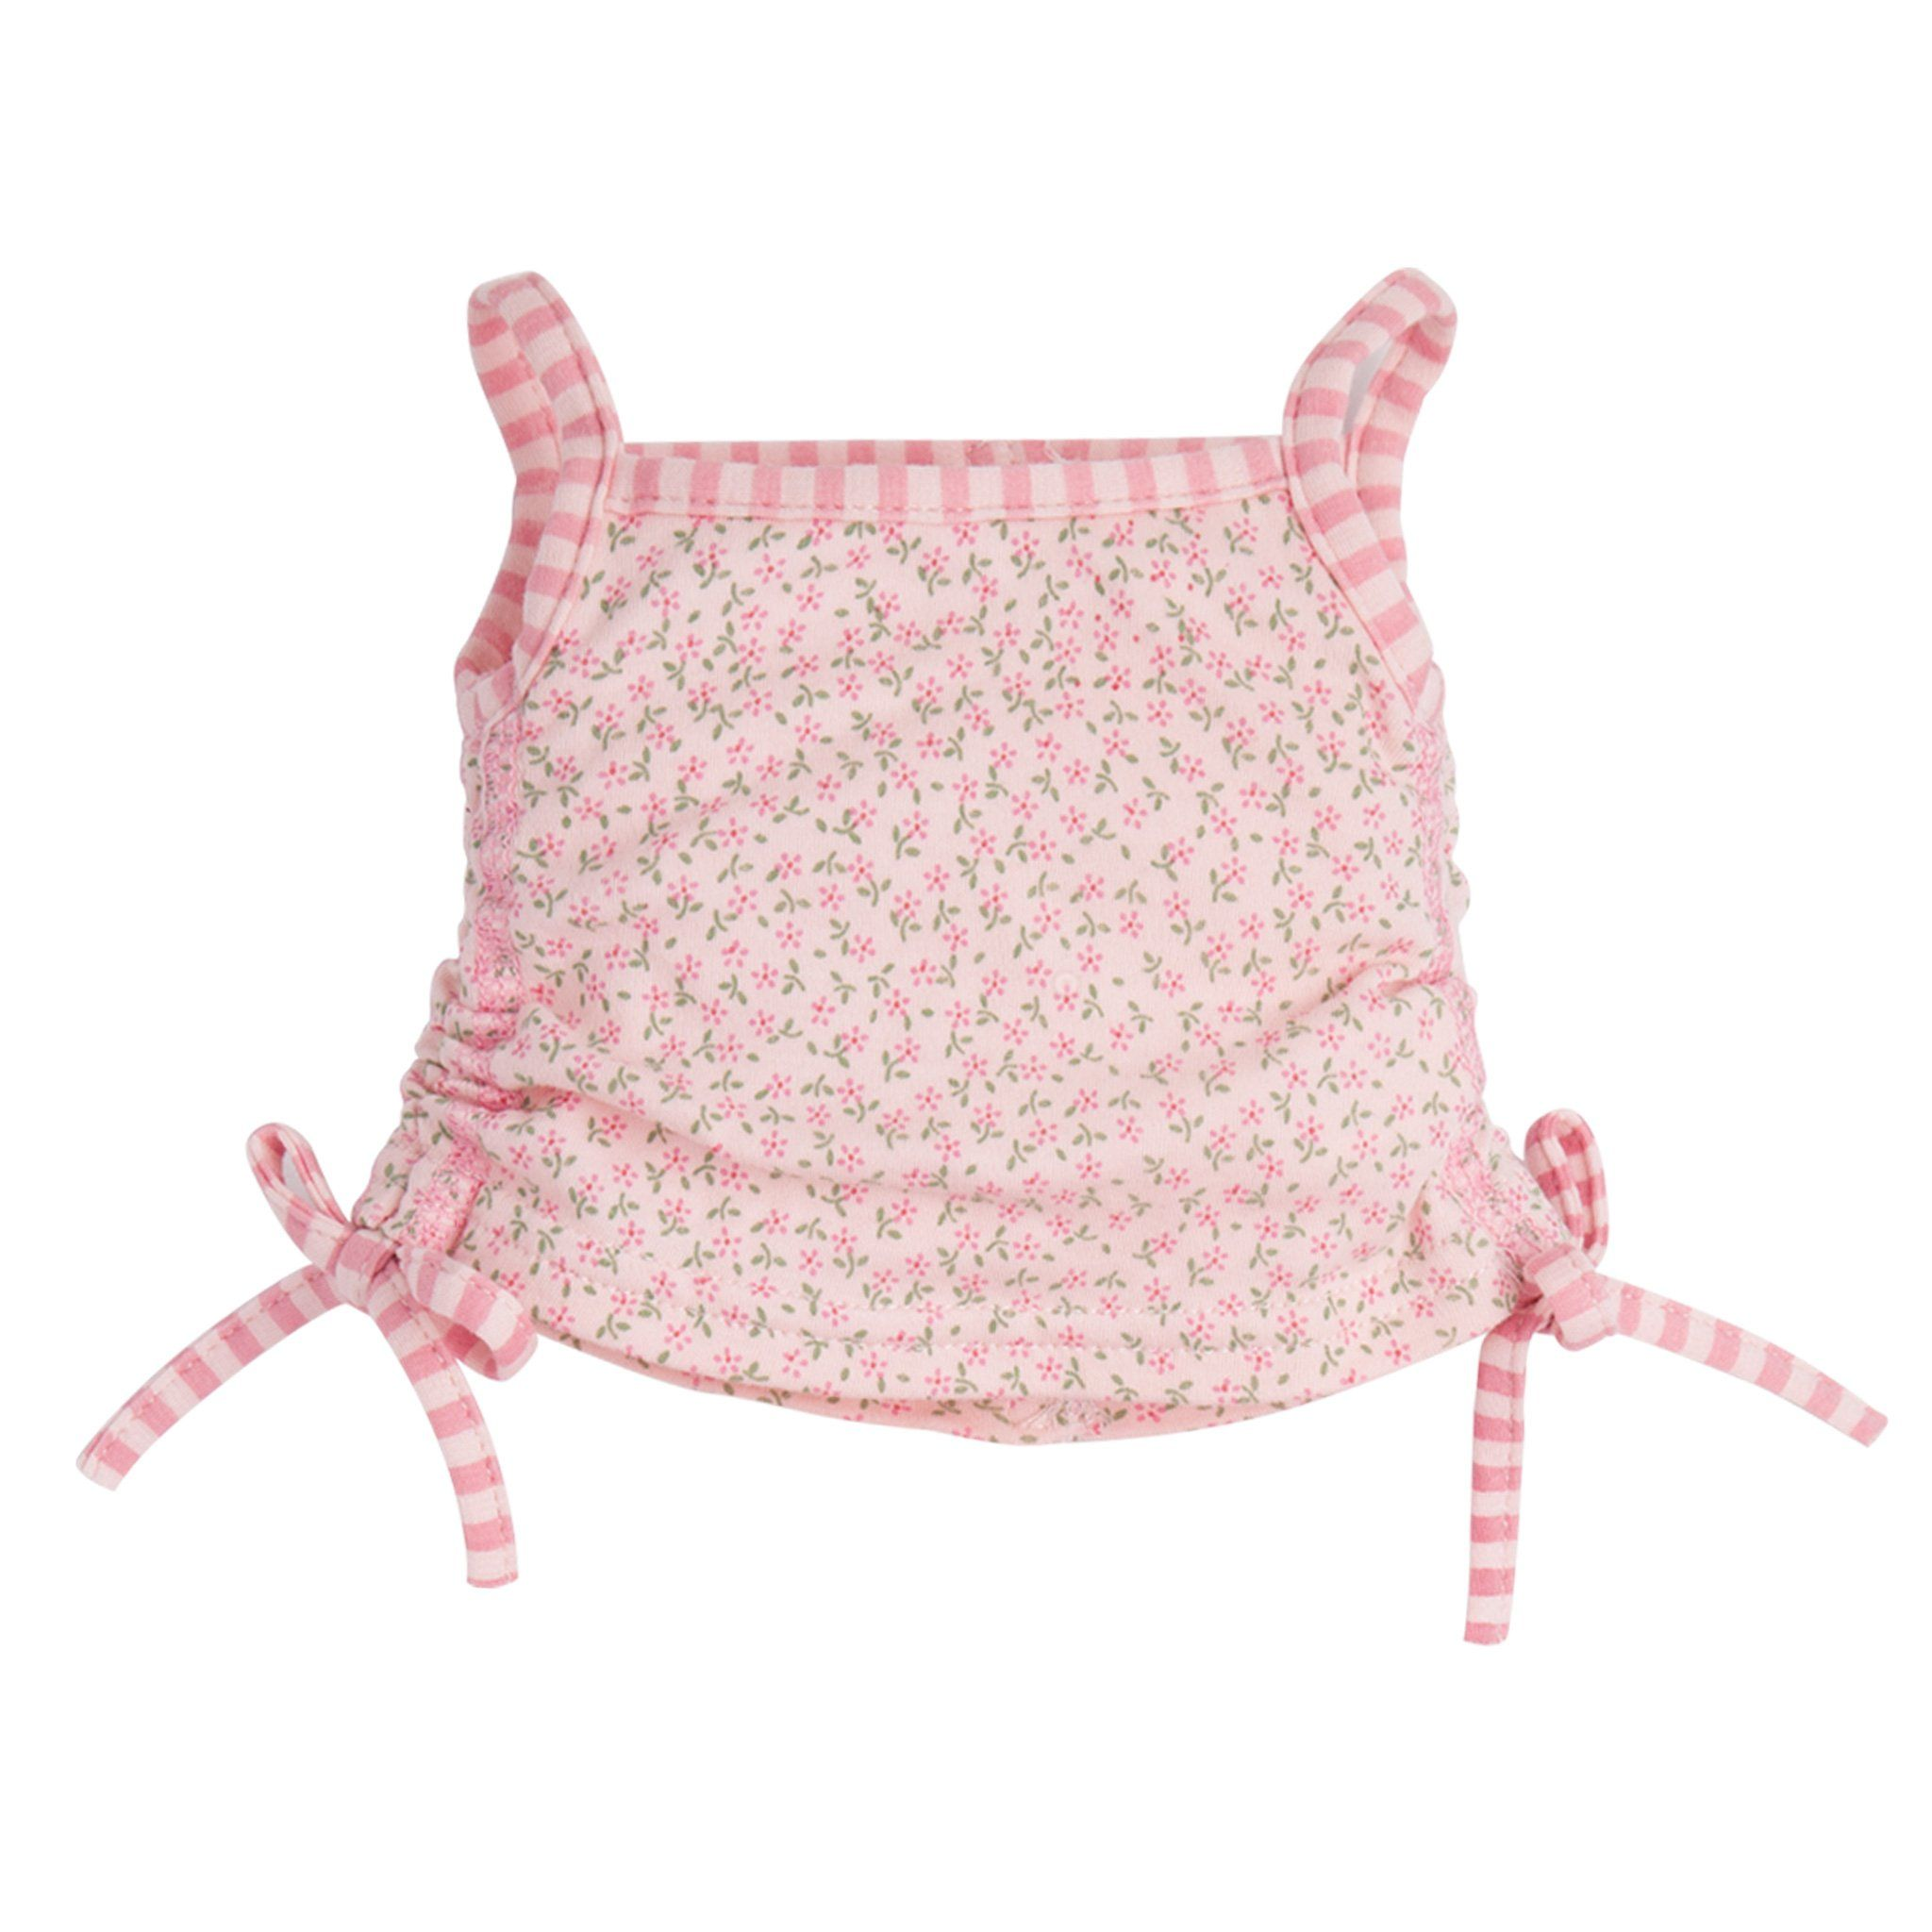 Perfectly Pink Pyjamas floral pink tank top fits all Maplelea dolls.